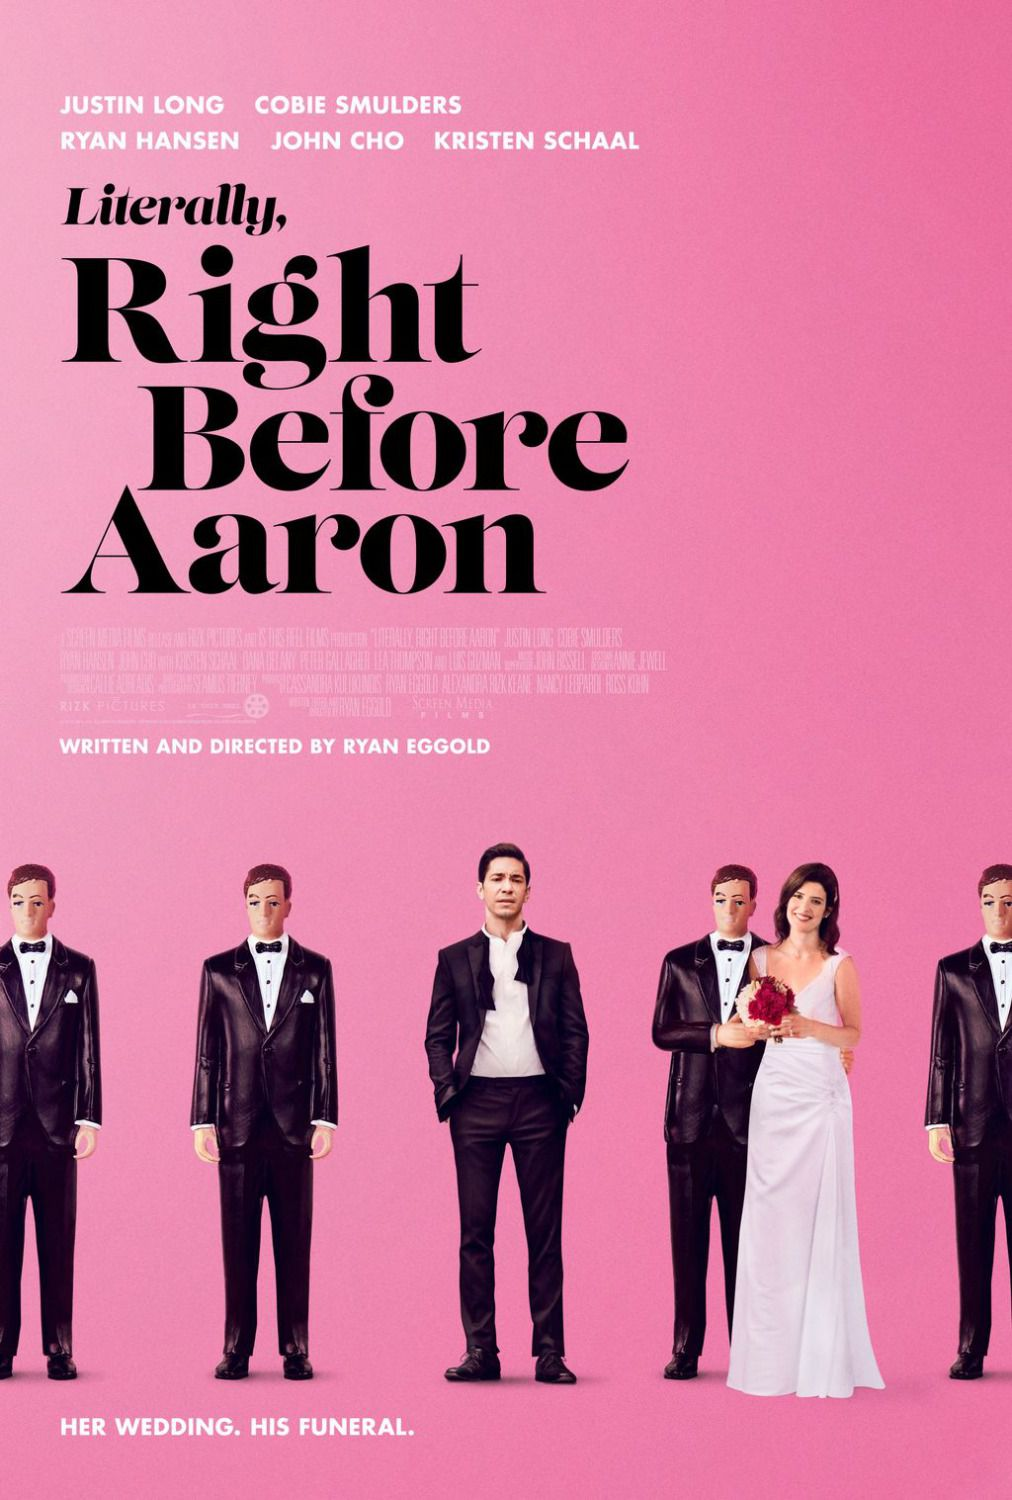 Literally right before Aaron - Her Wedding, His Funeral - Justin Long - Cobie Smulders - Ryan Hansen - John Cho - Kristen Schaal - Writen and Directed by Ryan Eggold - movie poster